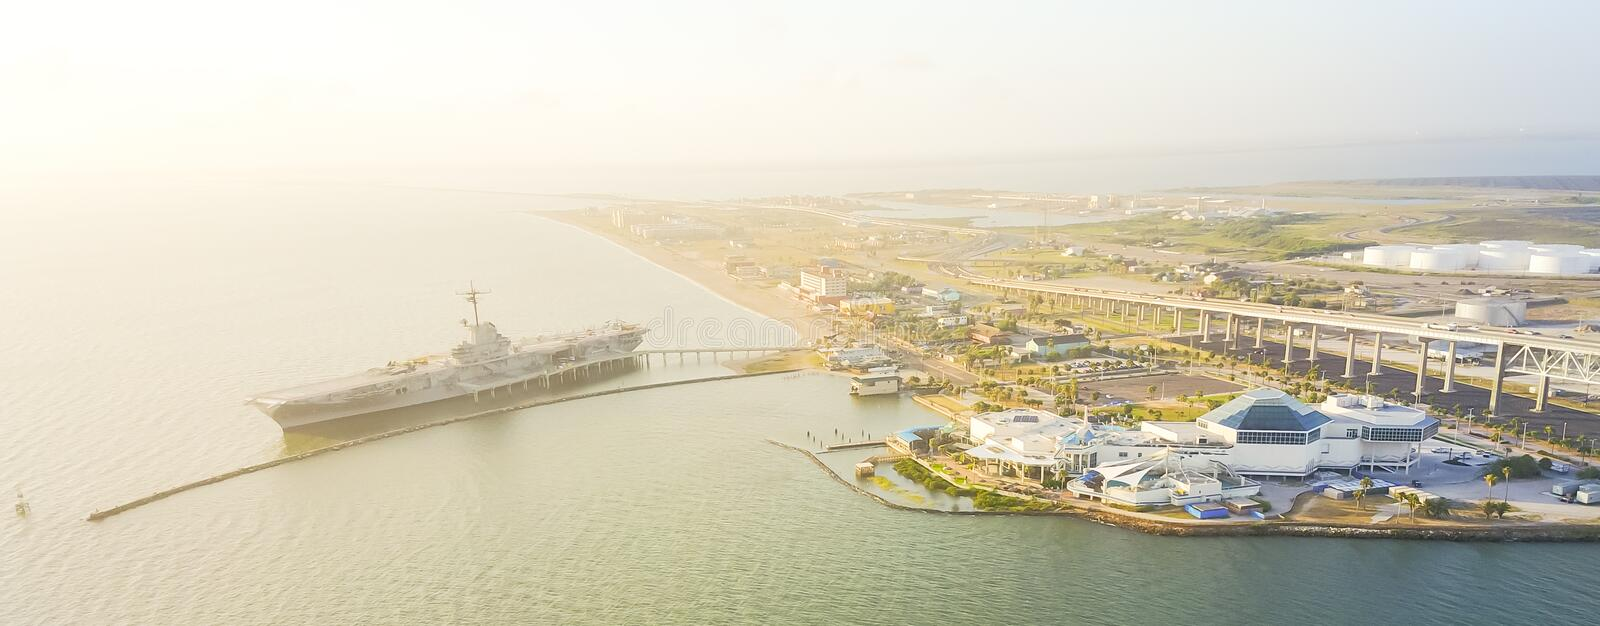 Panoramic top view North Beach waterfront in Corpus Christi, Tex royalty free stock images